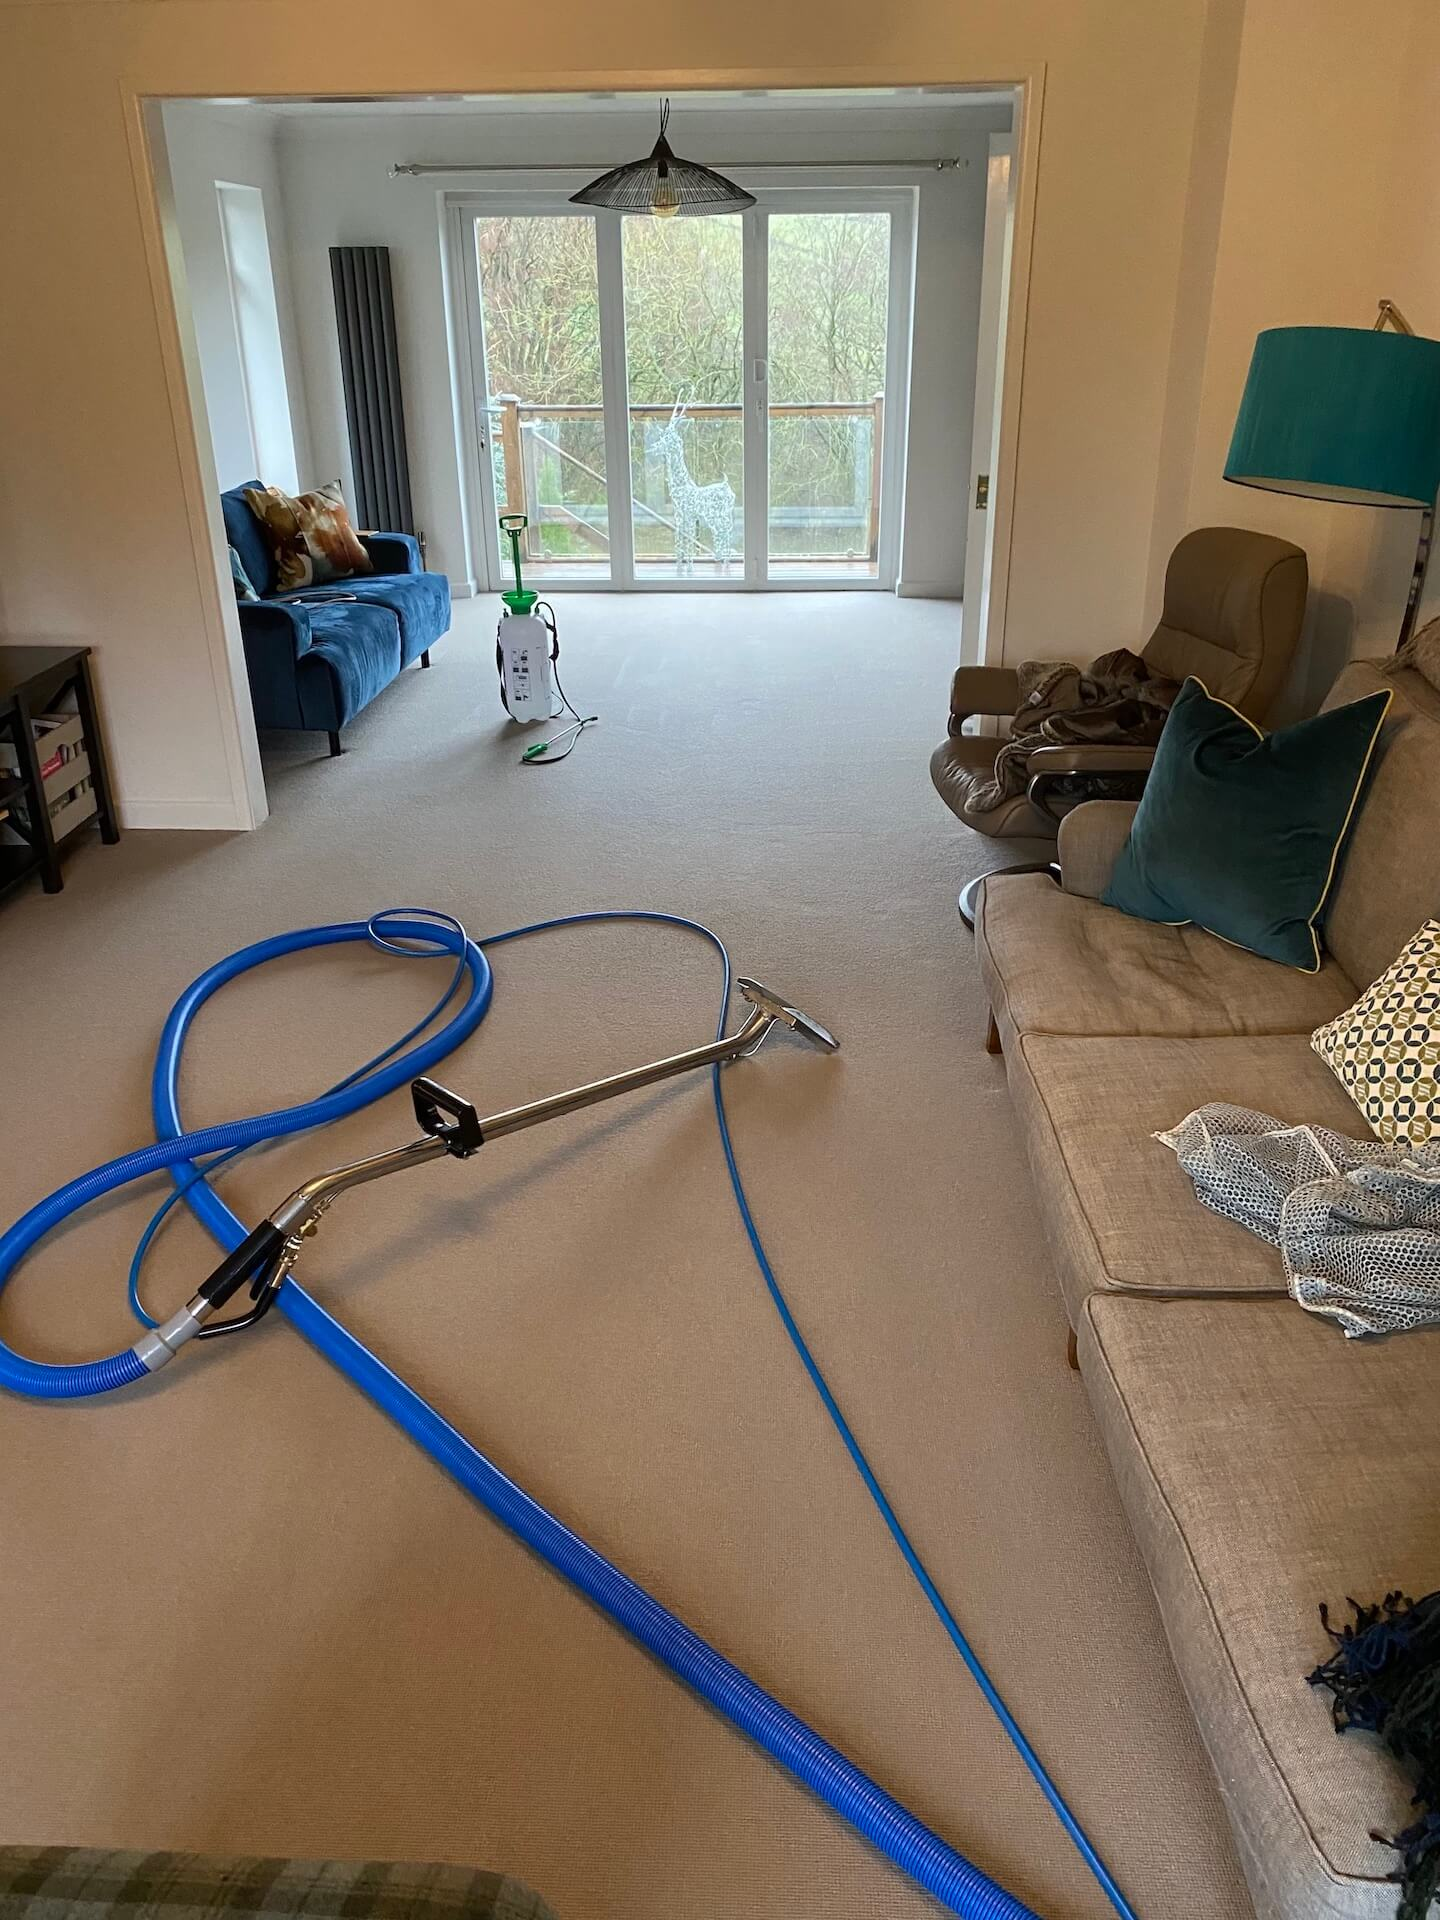 Living room carpet cleaning service